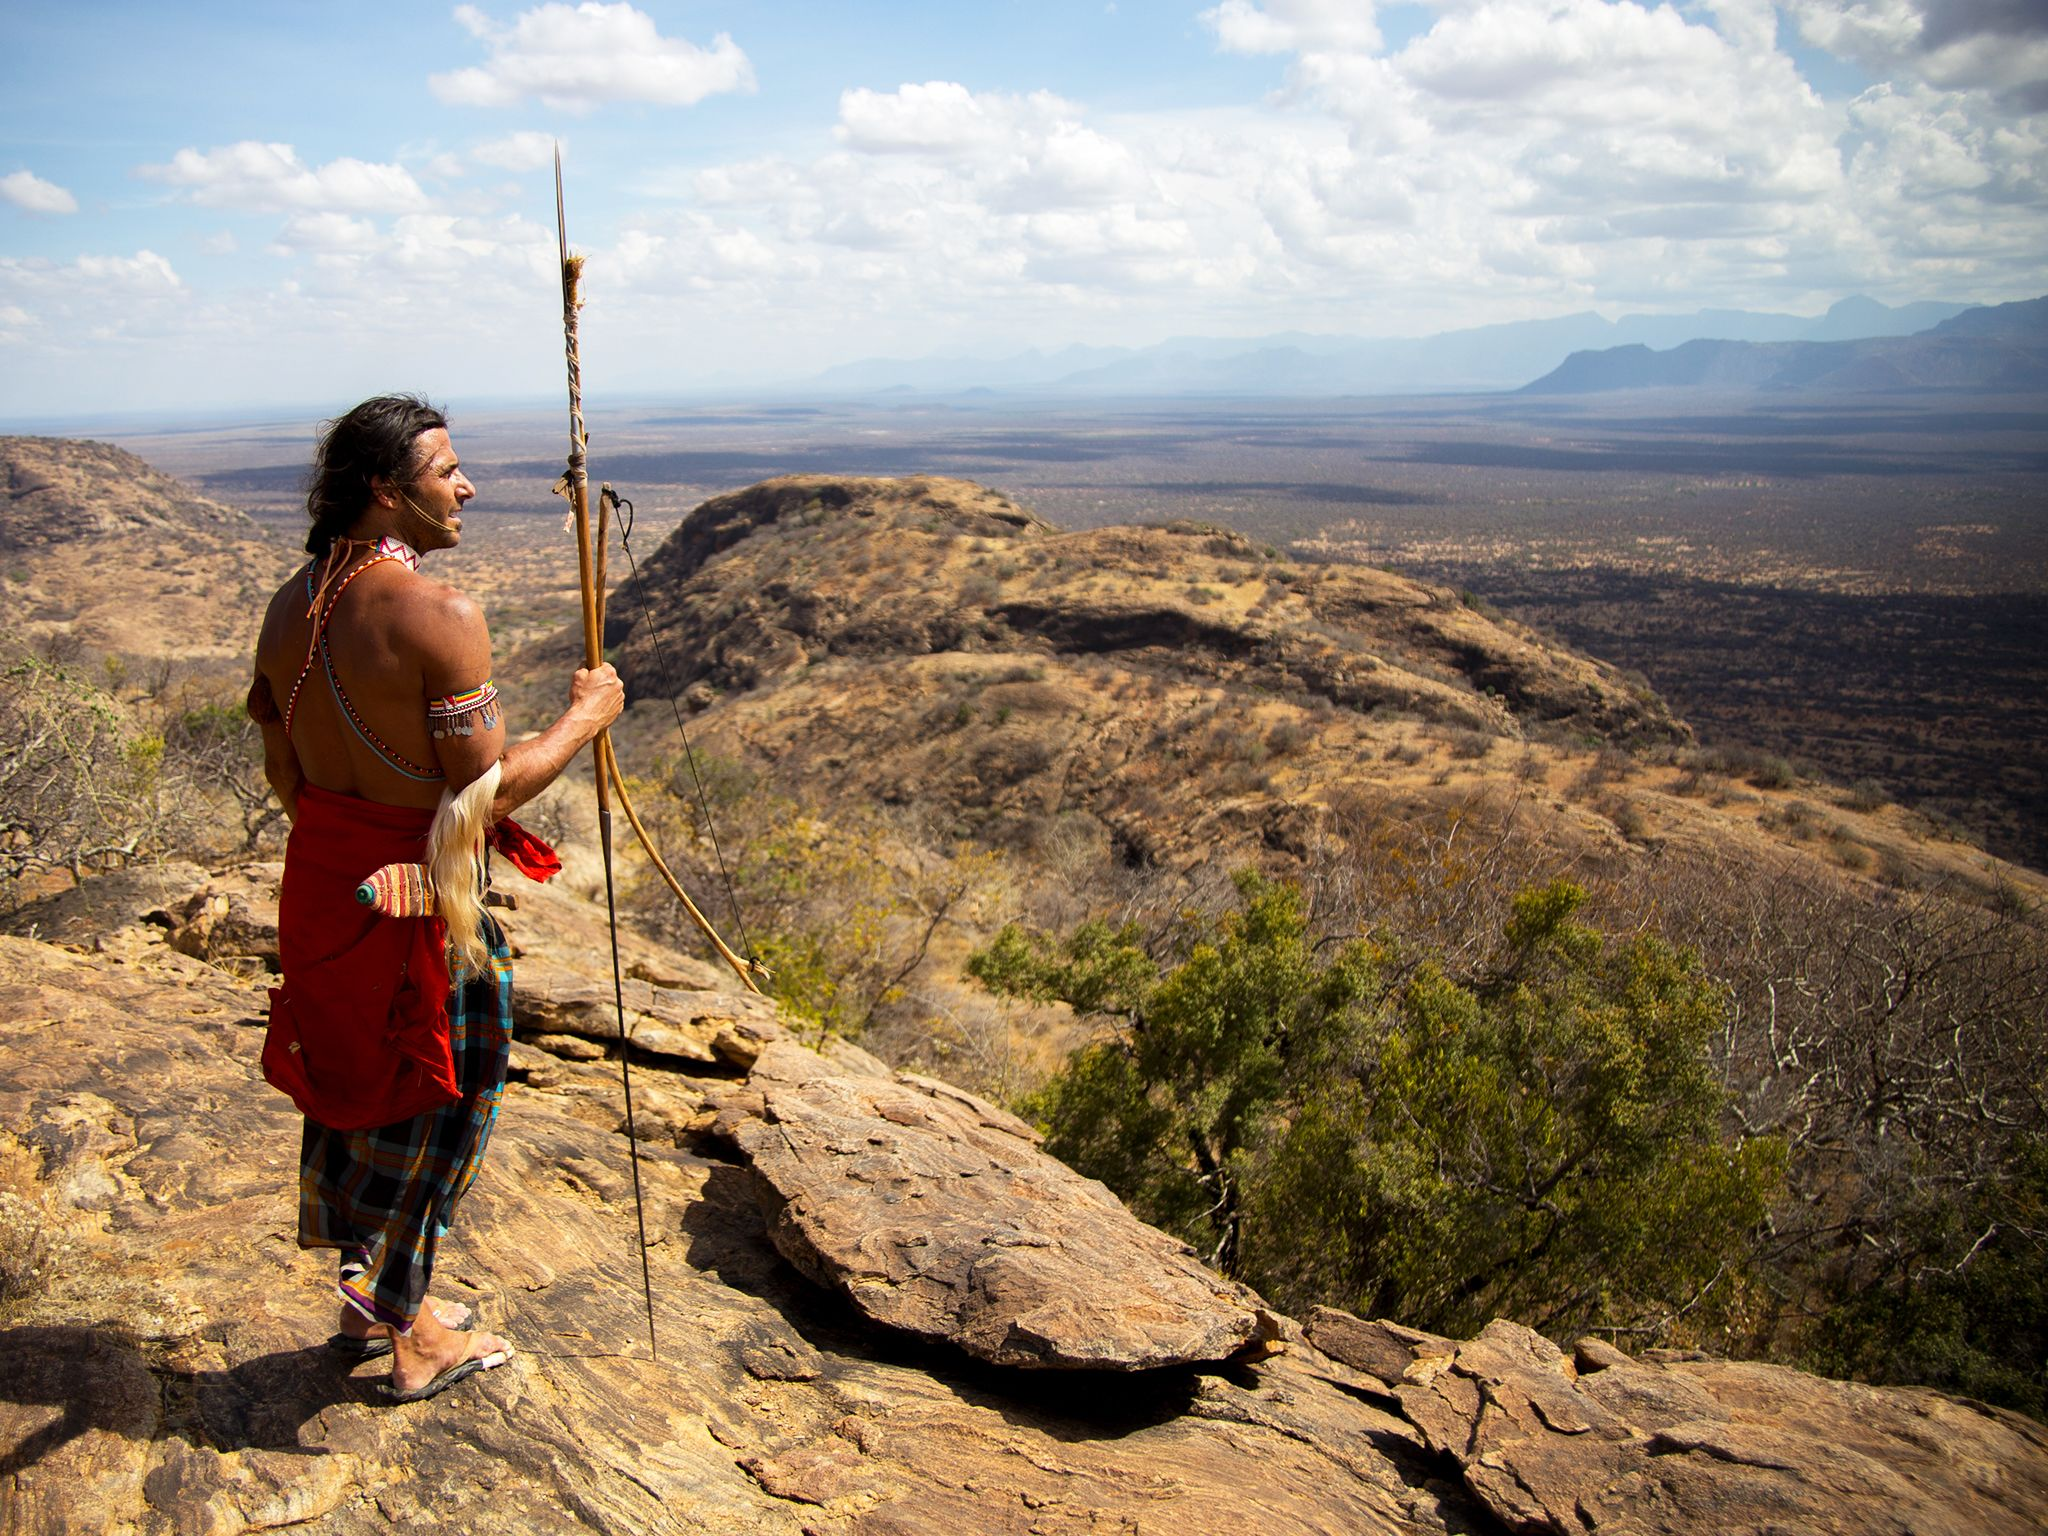 Mpagas, Kenya: Hazen Audel looking over the cliff edge. This image is from Survive The Tribe. [Photo of the day - September 2014]